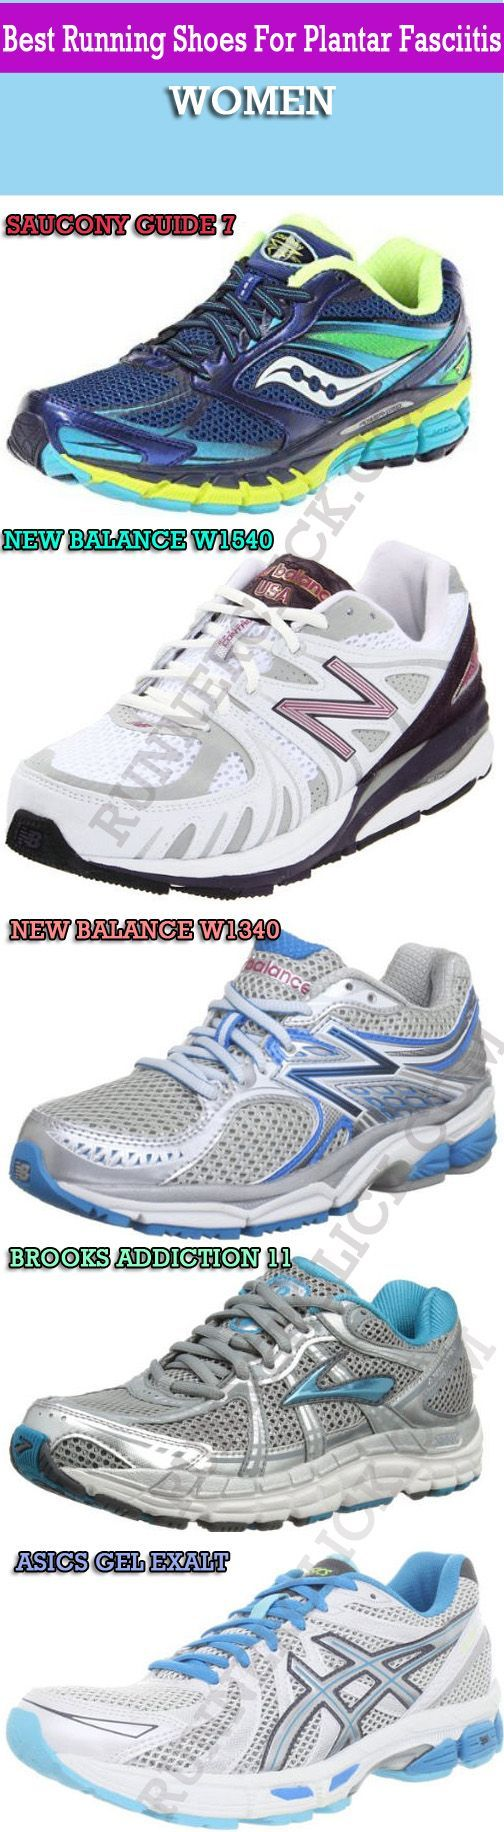 5 Best Running Shoes For Plantar Fasciitis – Women                                                                                                                                                      More